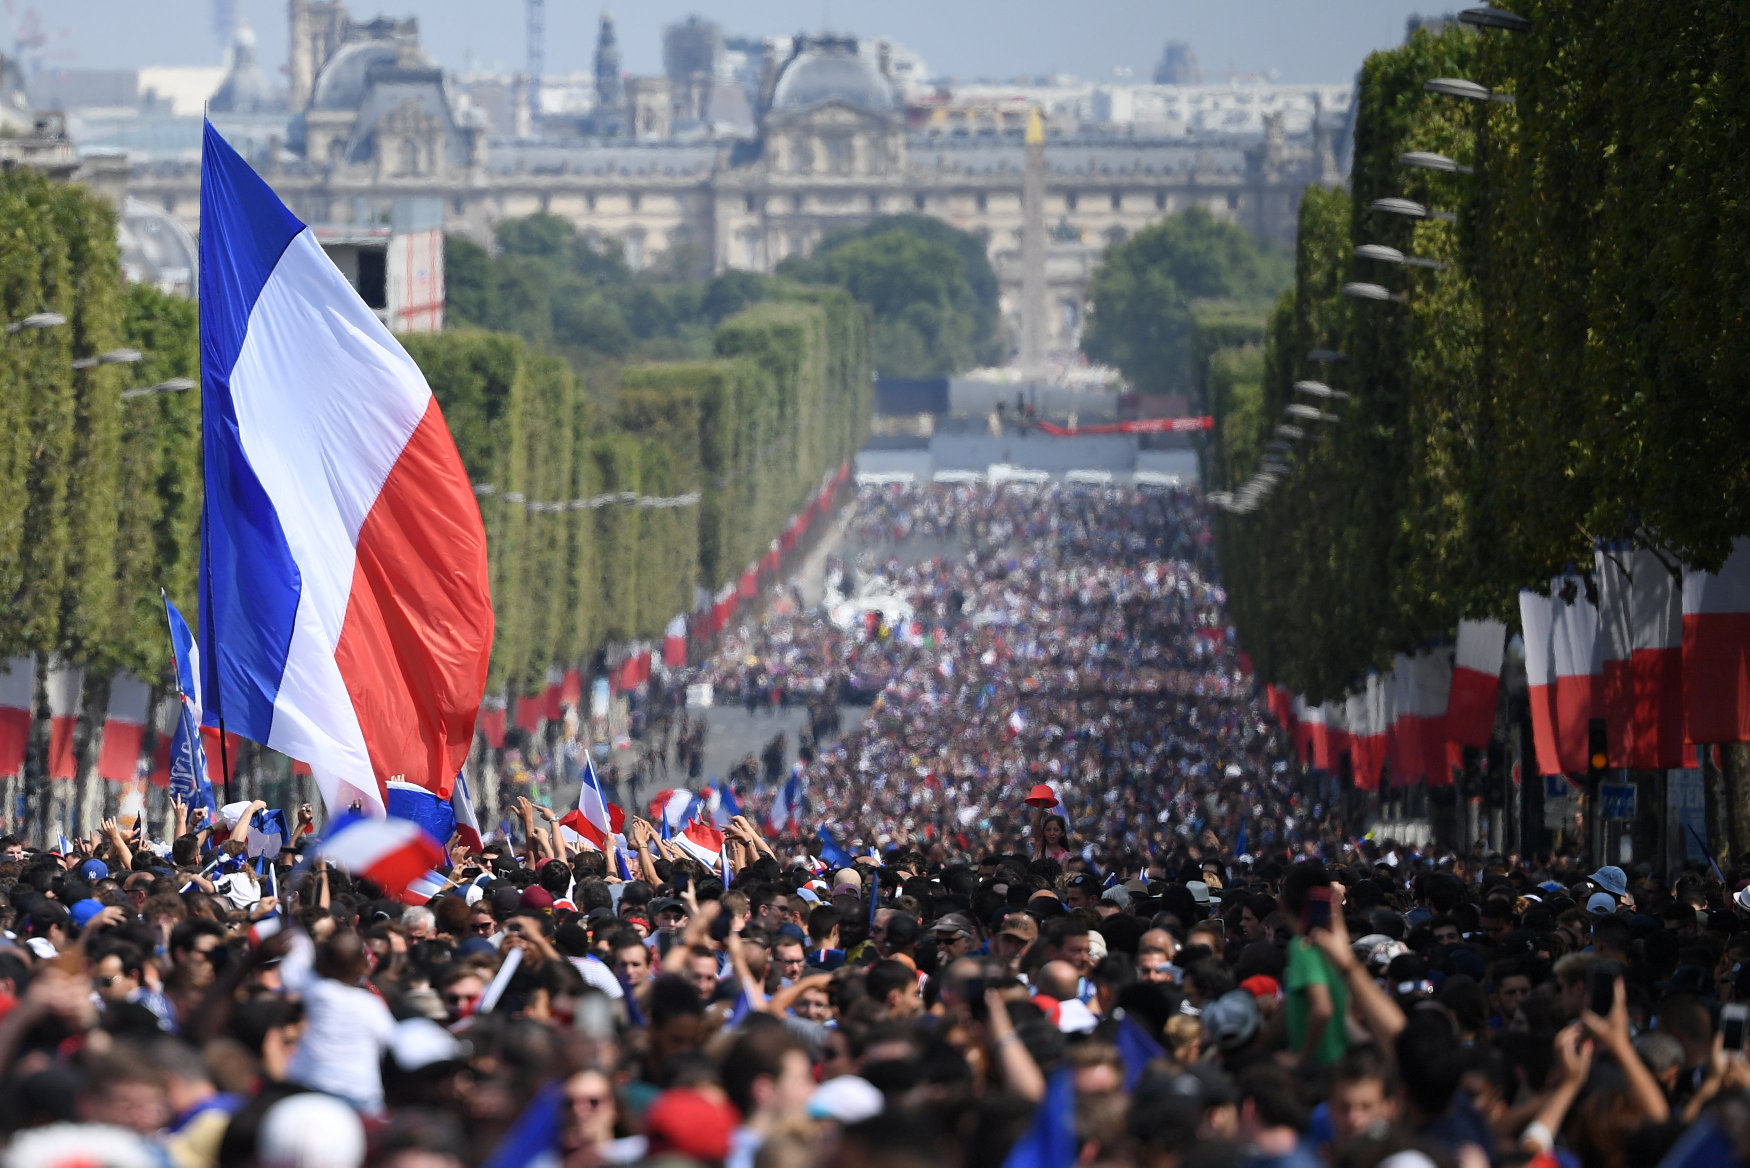 2018-07-16T144908Z_835143653_RC1C671C5660_RTRMADP_3_SOCCER-WORLDCUP-FRANCE-PARADE_1